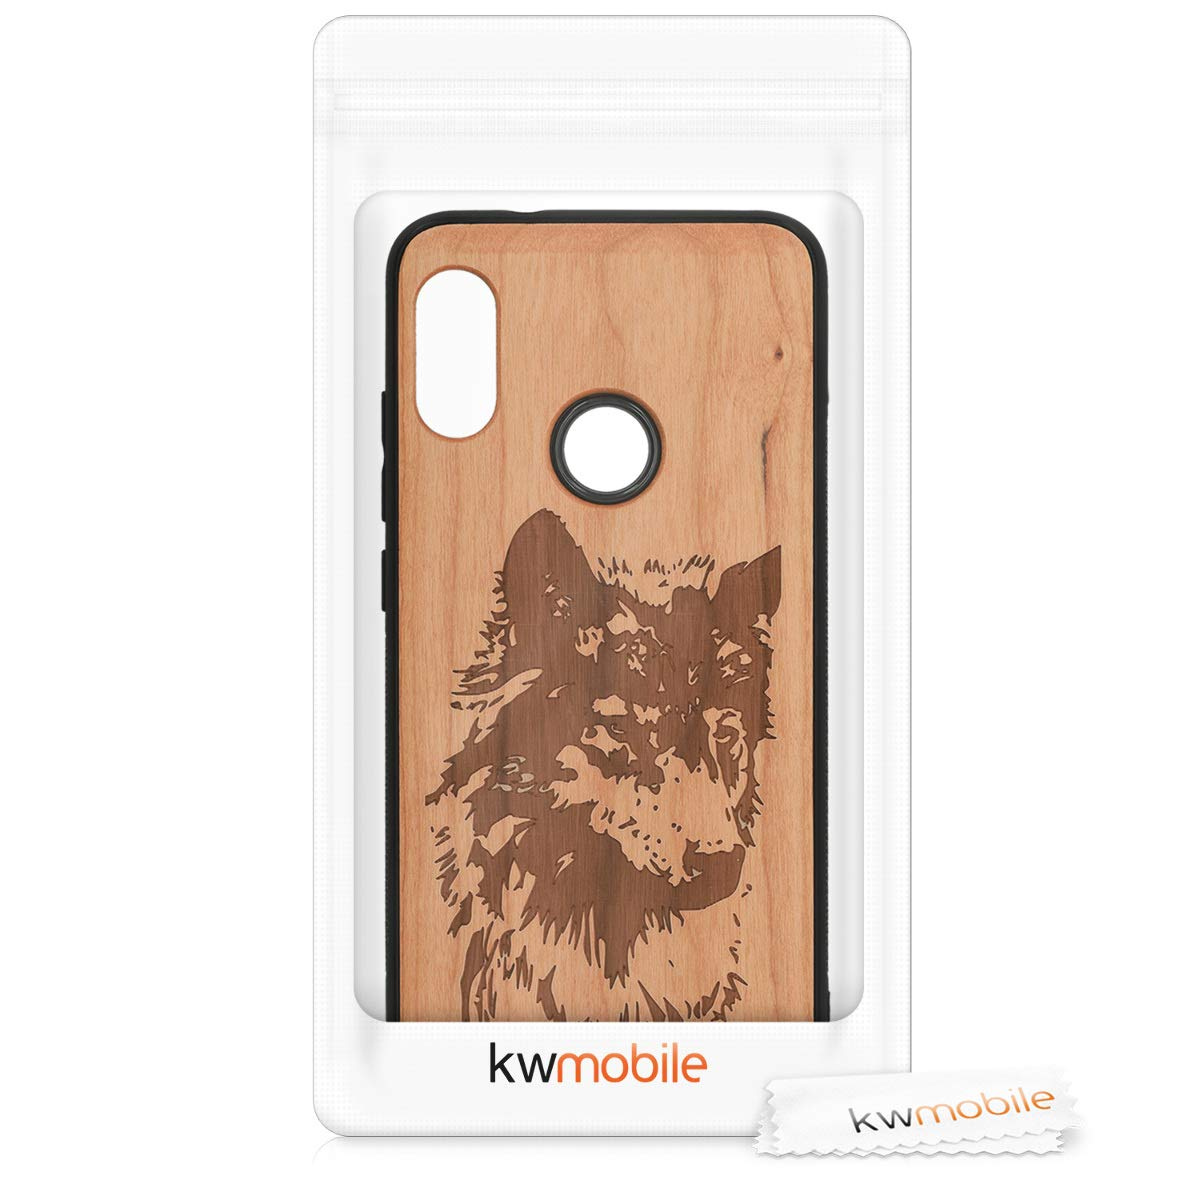 kwmobile Wooden Protection case for Xiaomi Redmi 6 Pro/Mi A2 Lite - Hard case with TPU Bumper Wolf Head Cherrywood